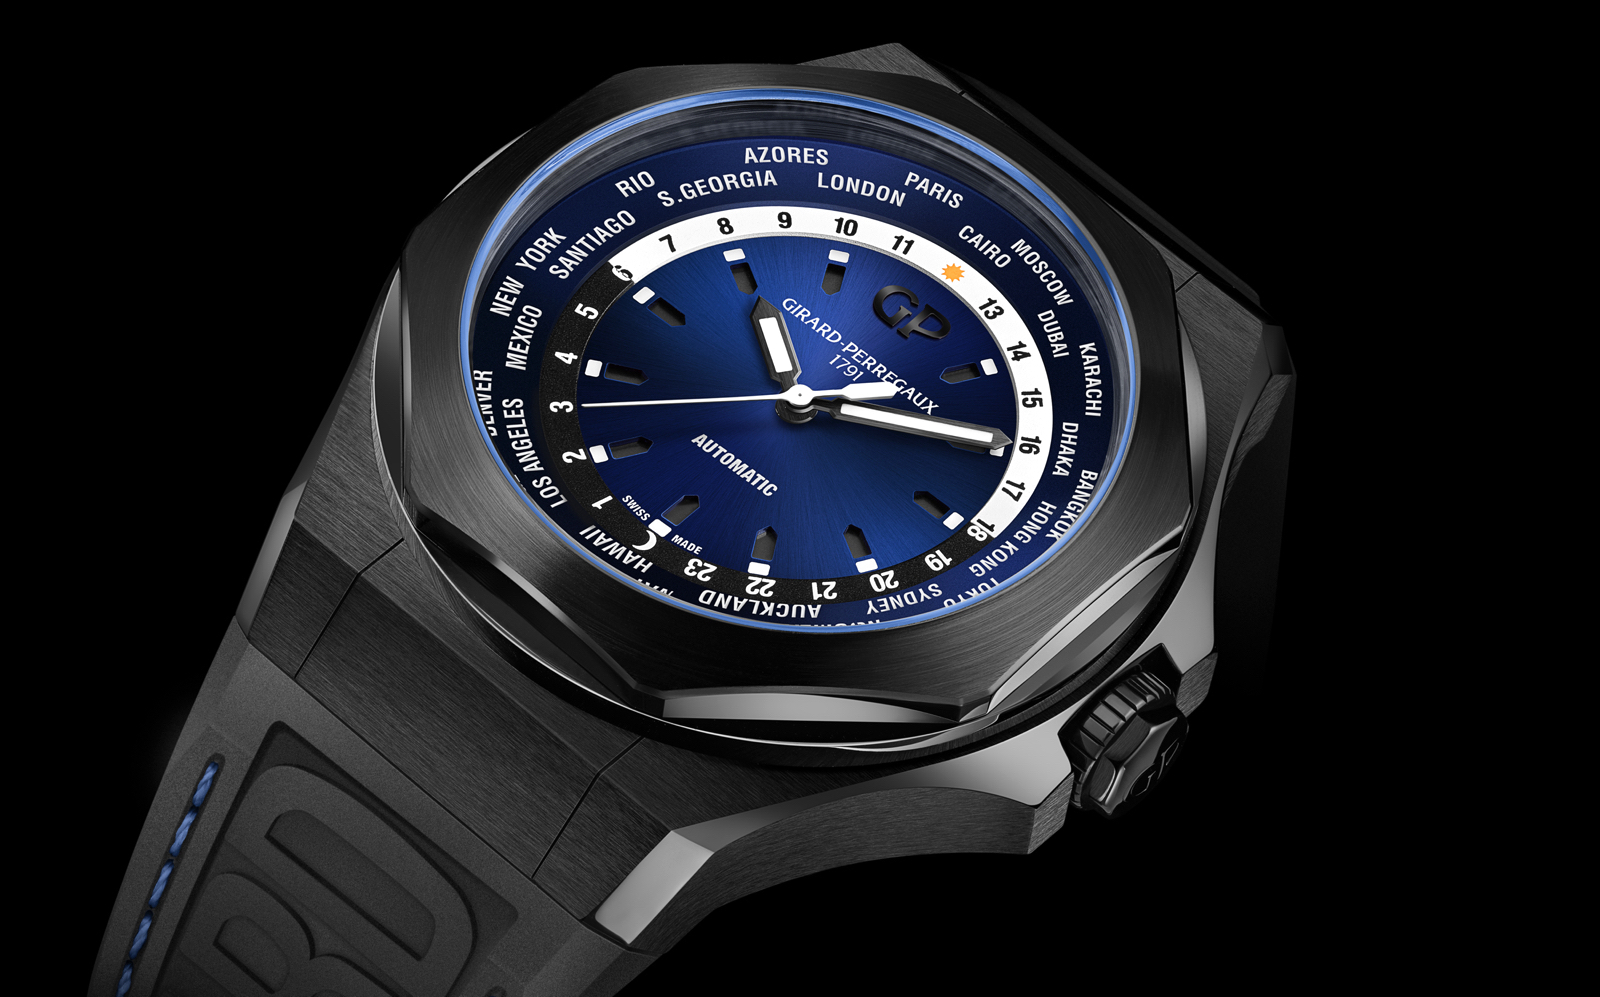 Girard-Perregaux SIHH 2019 Laureato Absolute ww.tc